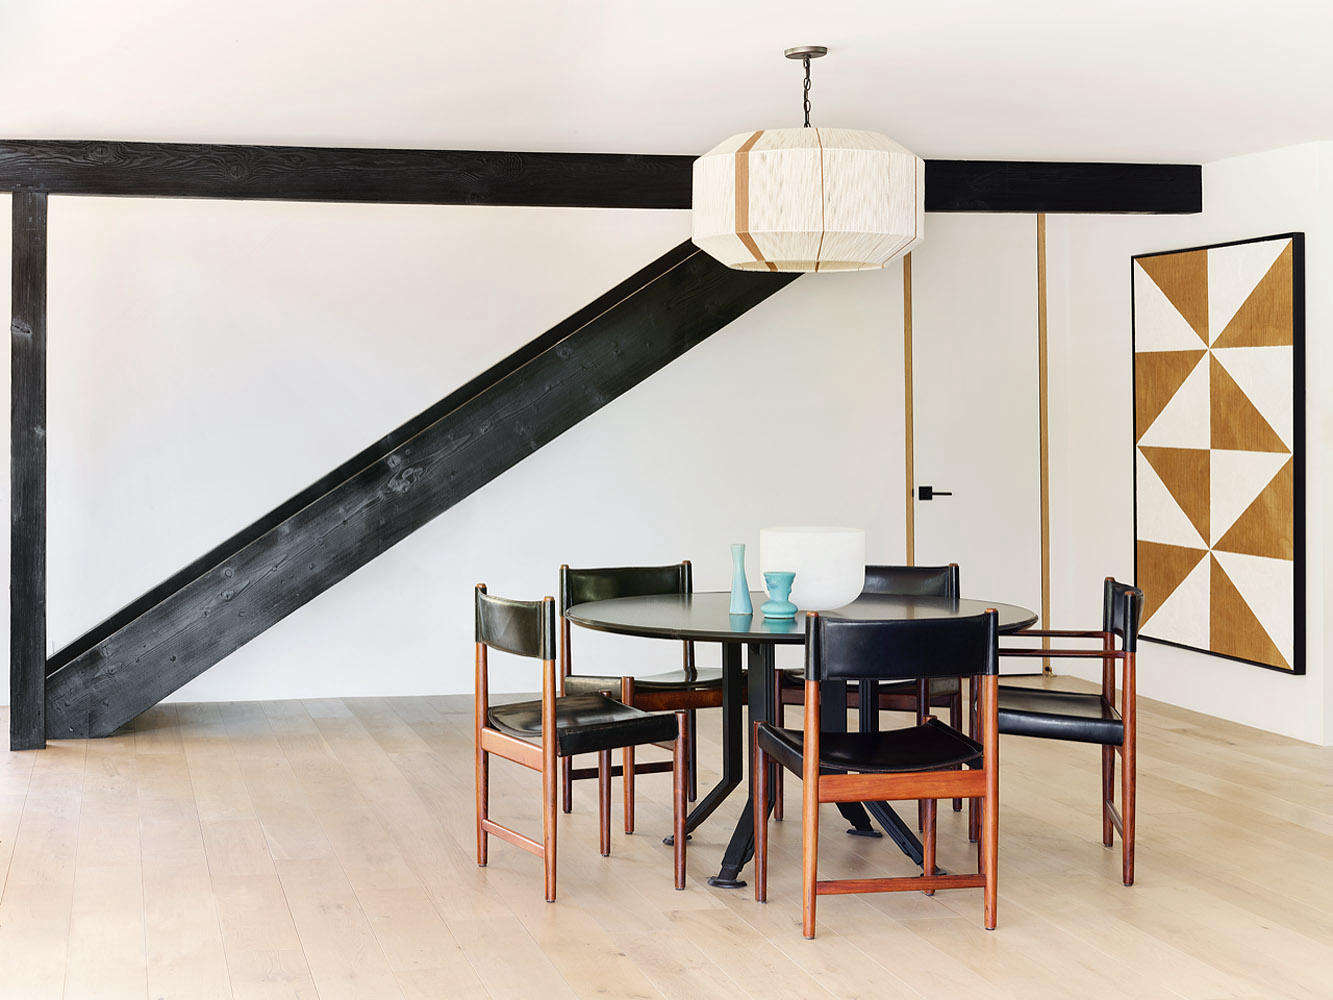 Every Piece A Statement A Refined Malibu Home For A Father And Son By La Designer Brigette Romanek Remodelista